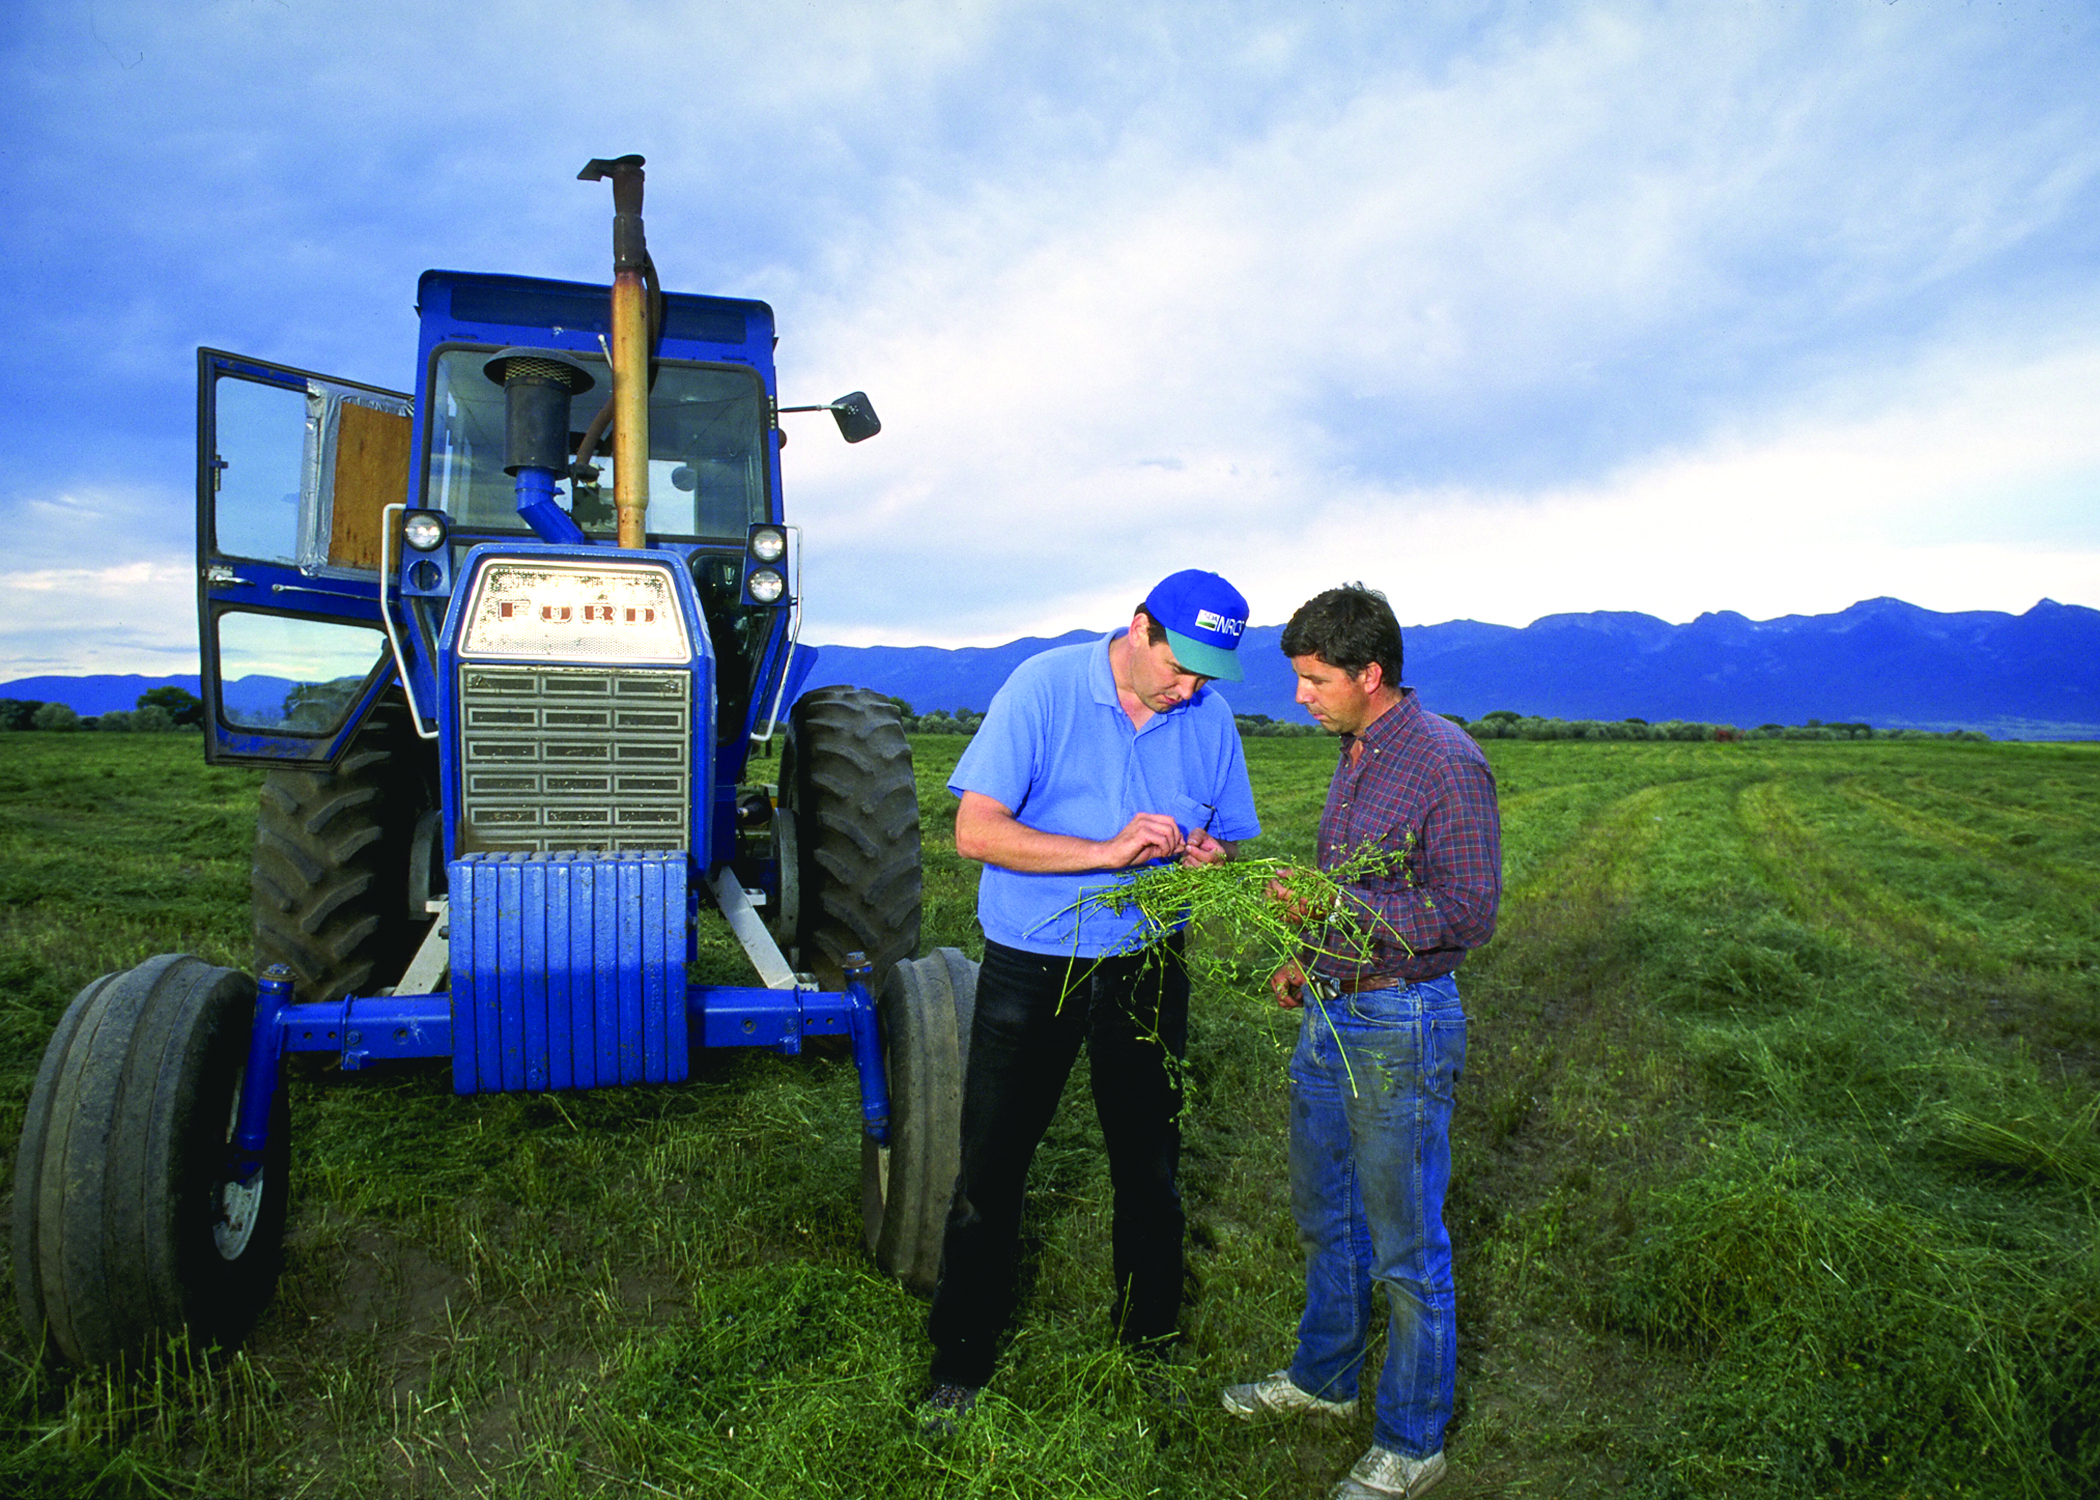 Agricolture in Montana